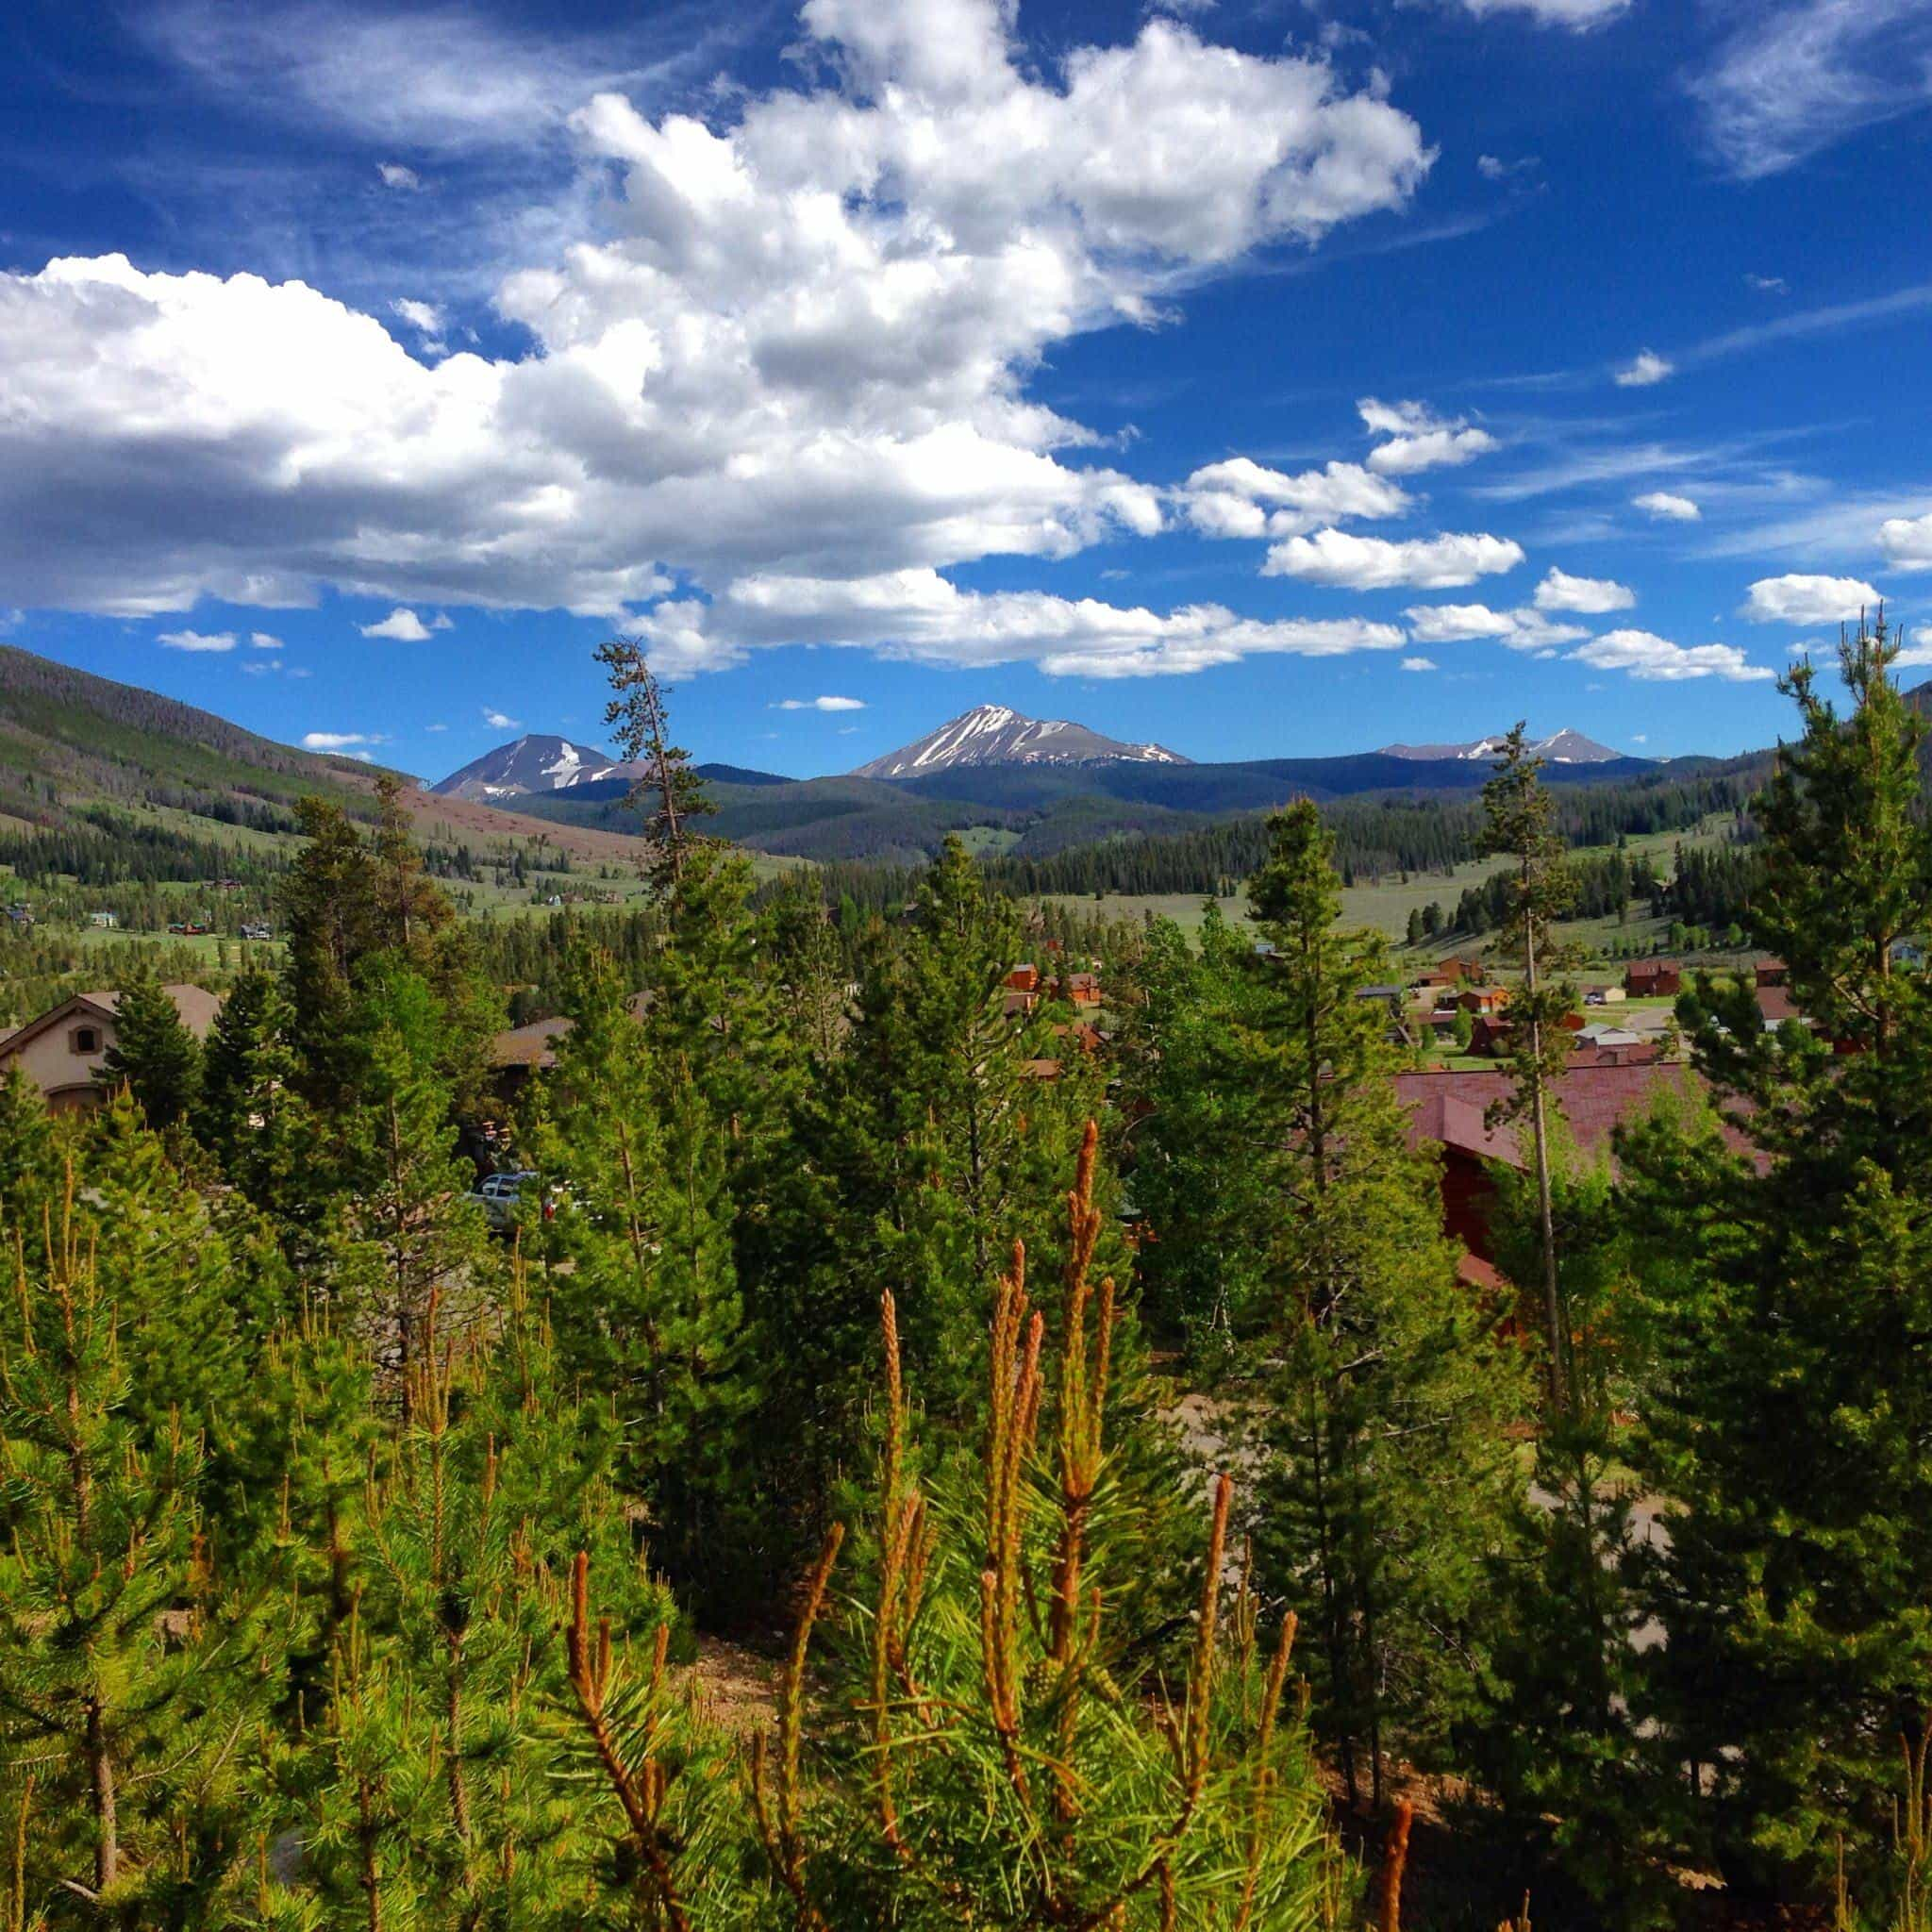 The view from our vacation rental home in Keystone, Colorado